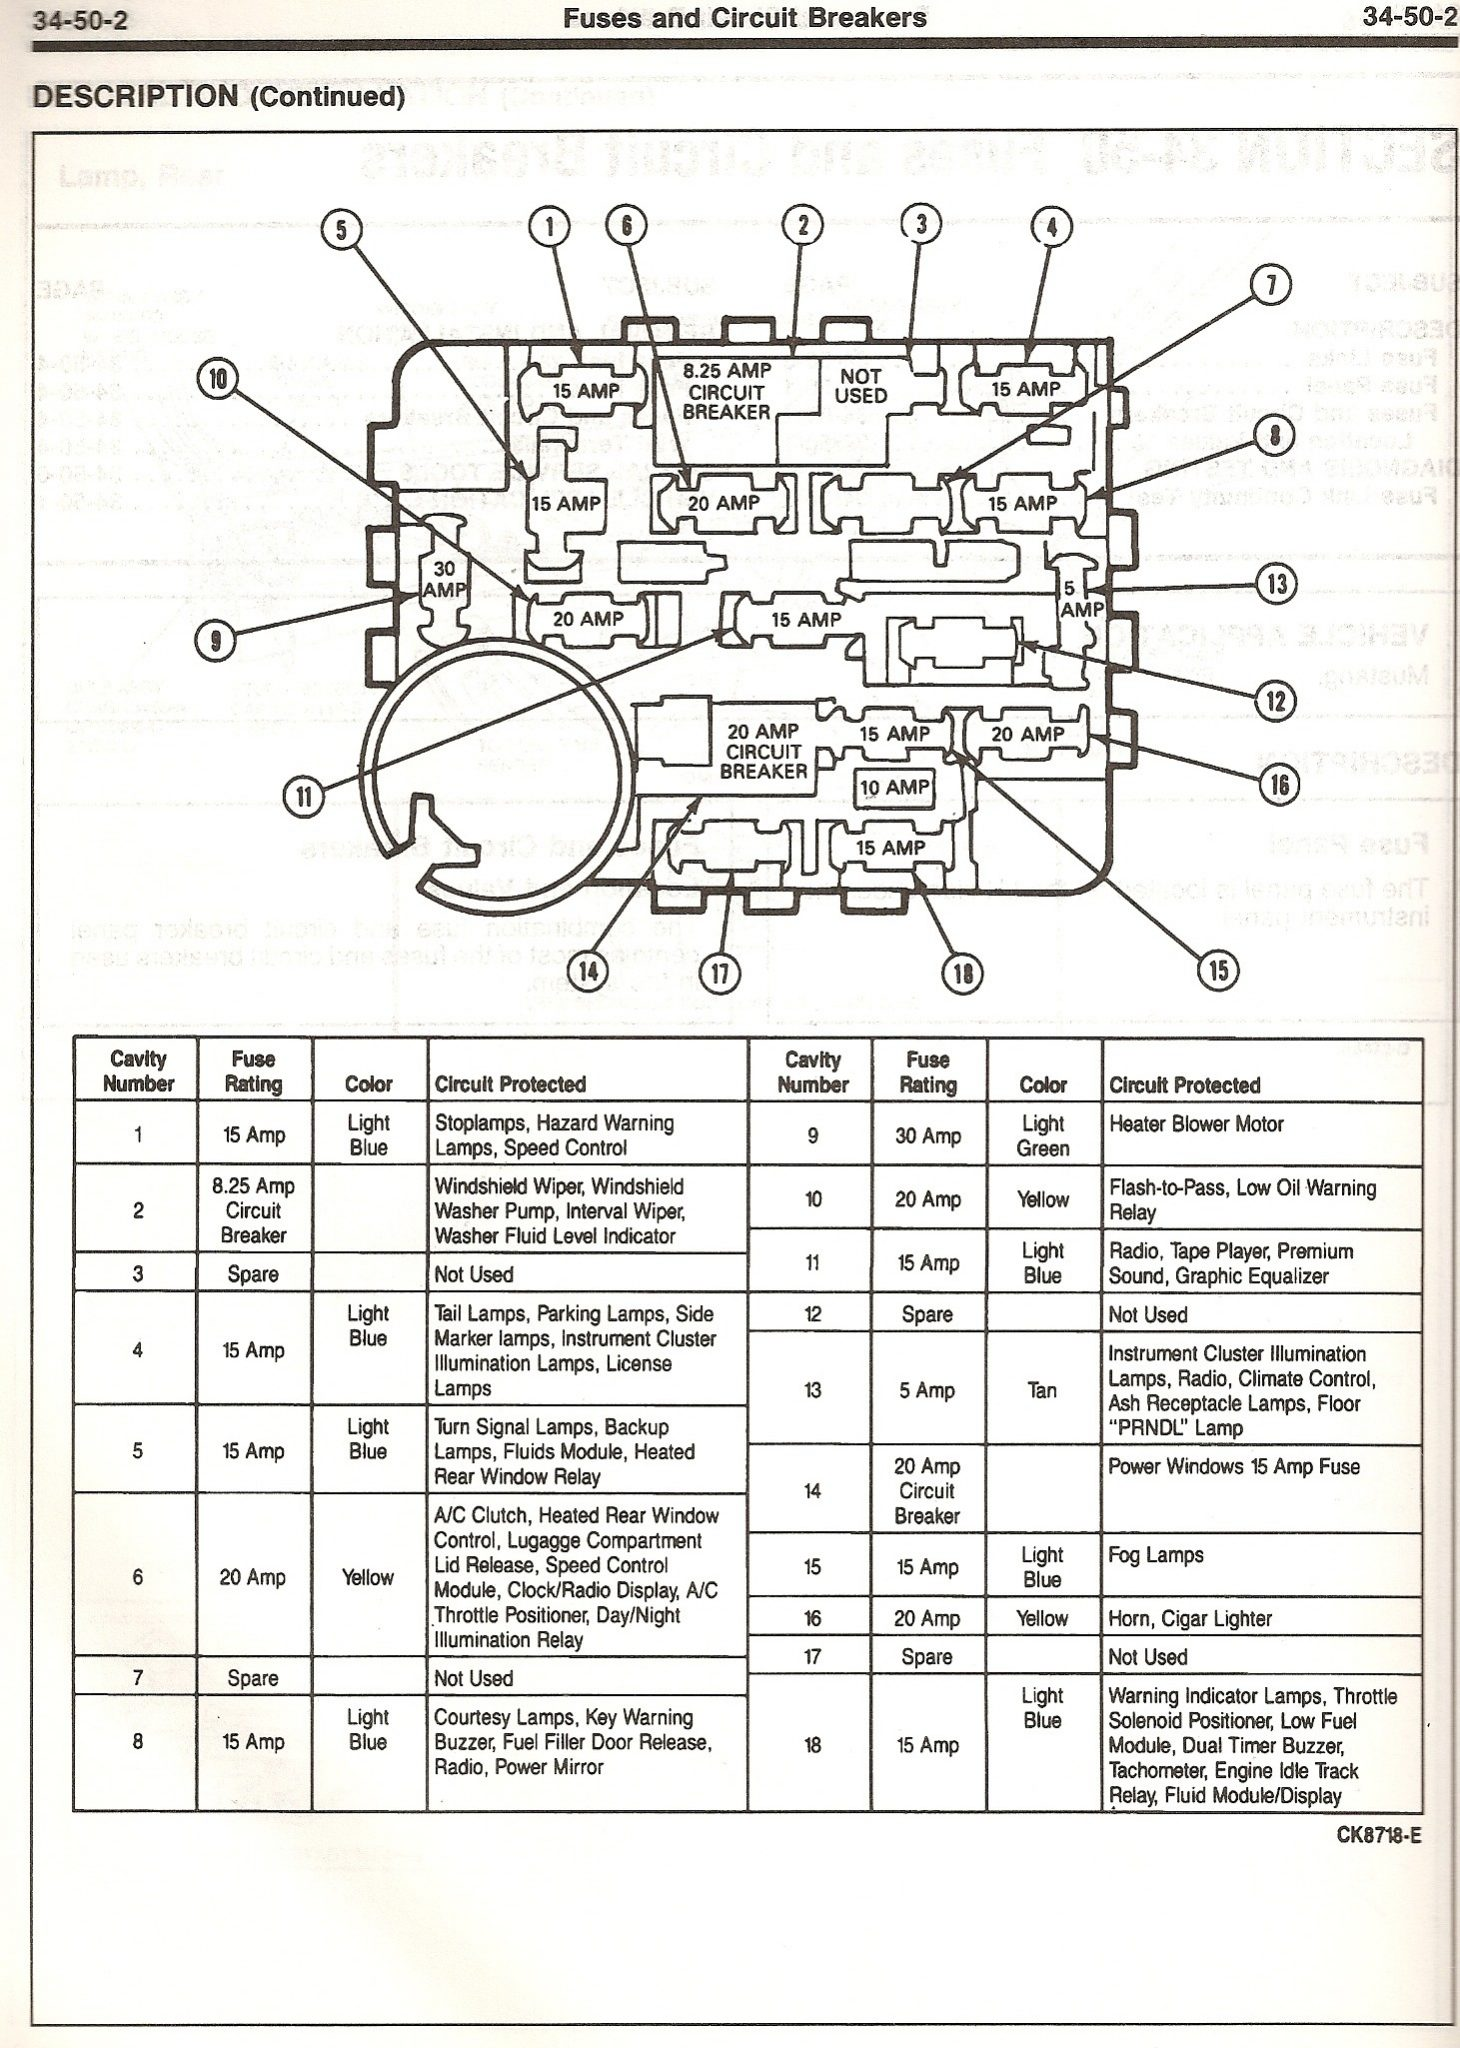 2002 Expedition Fuse Box also Help Wiring Radio 57161 as well 2000 Daewoo Leganza Audio System Stereo Wiring Diagram as well Exploded View Results together with 1965 Ford Truck Electrical Wiring. on 1993 ford explorer stereo wiring diagram